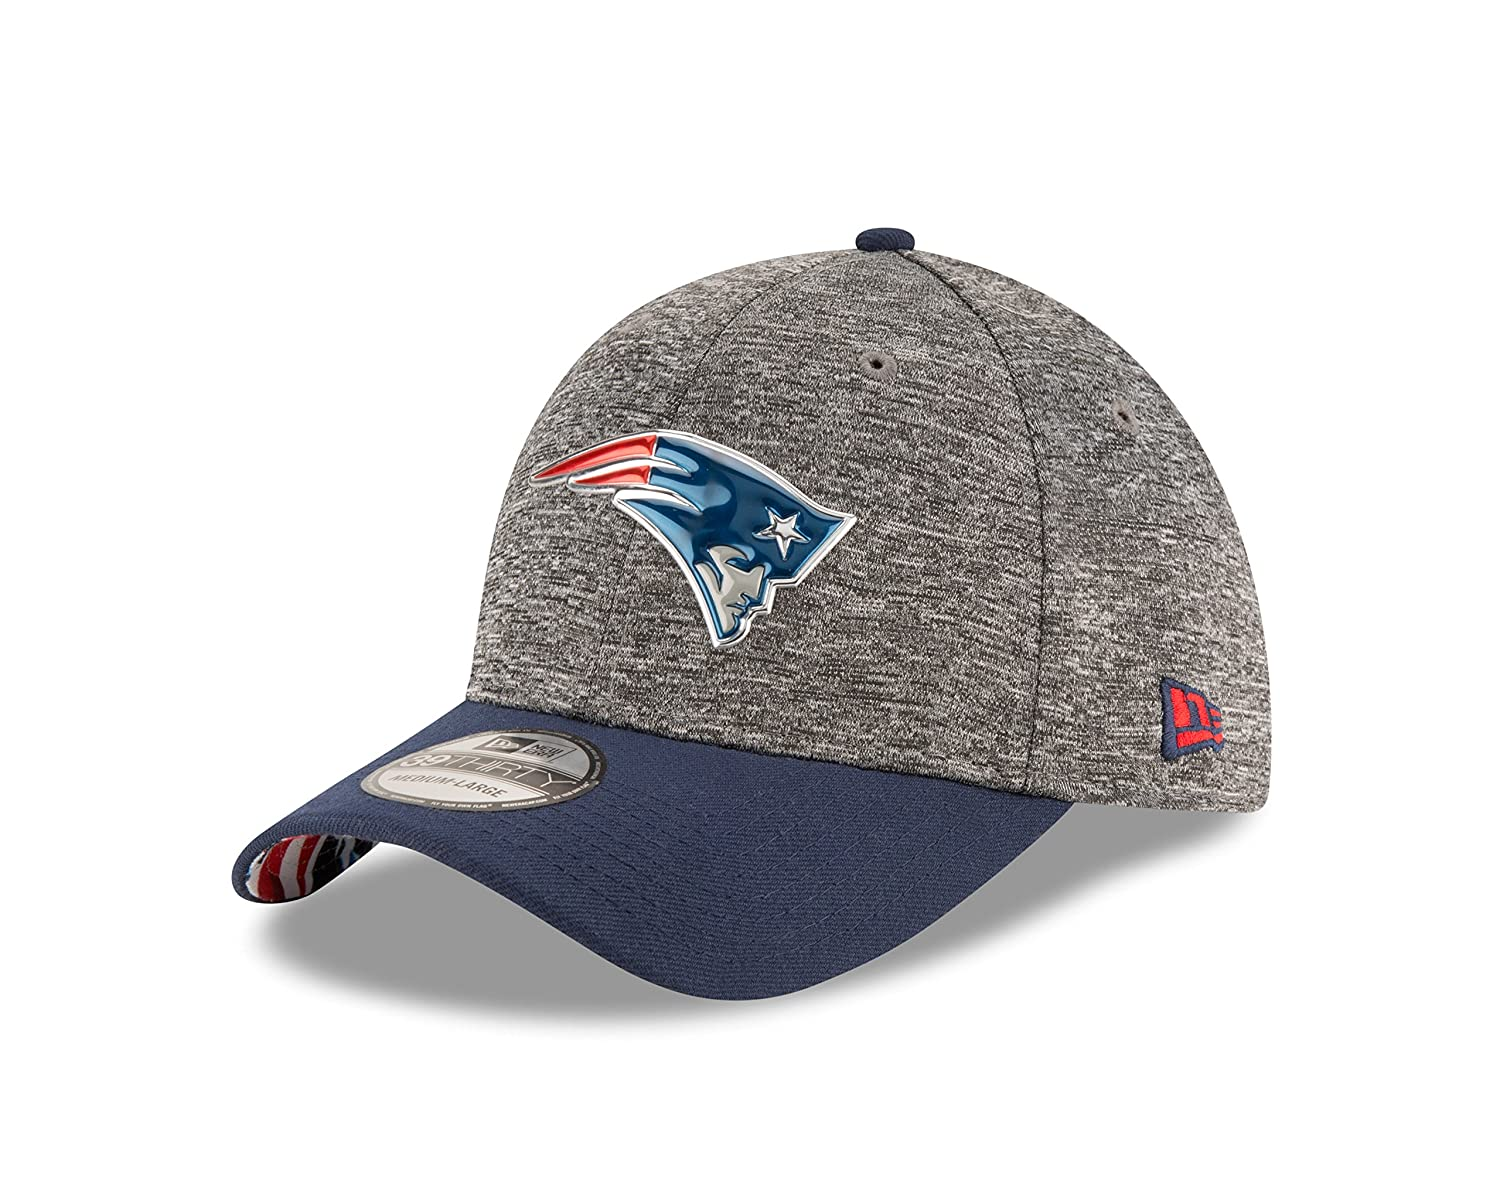 bd421239ace7fc Amazon.com : NFL New England Patriots 2016 Draft 39Thirty Stretch Fit Cap,  Large/X-Large, Heather Gray : Sports & Outdoors